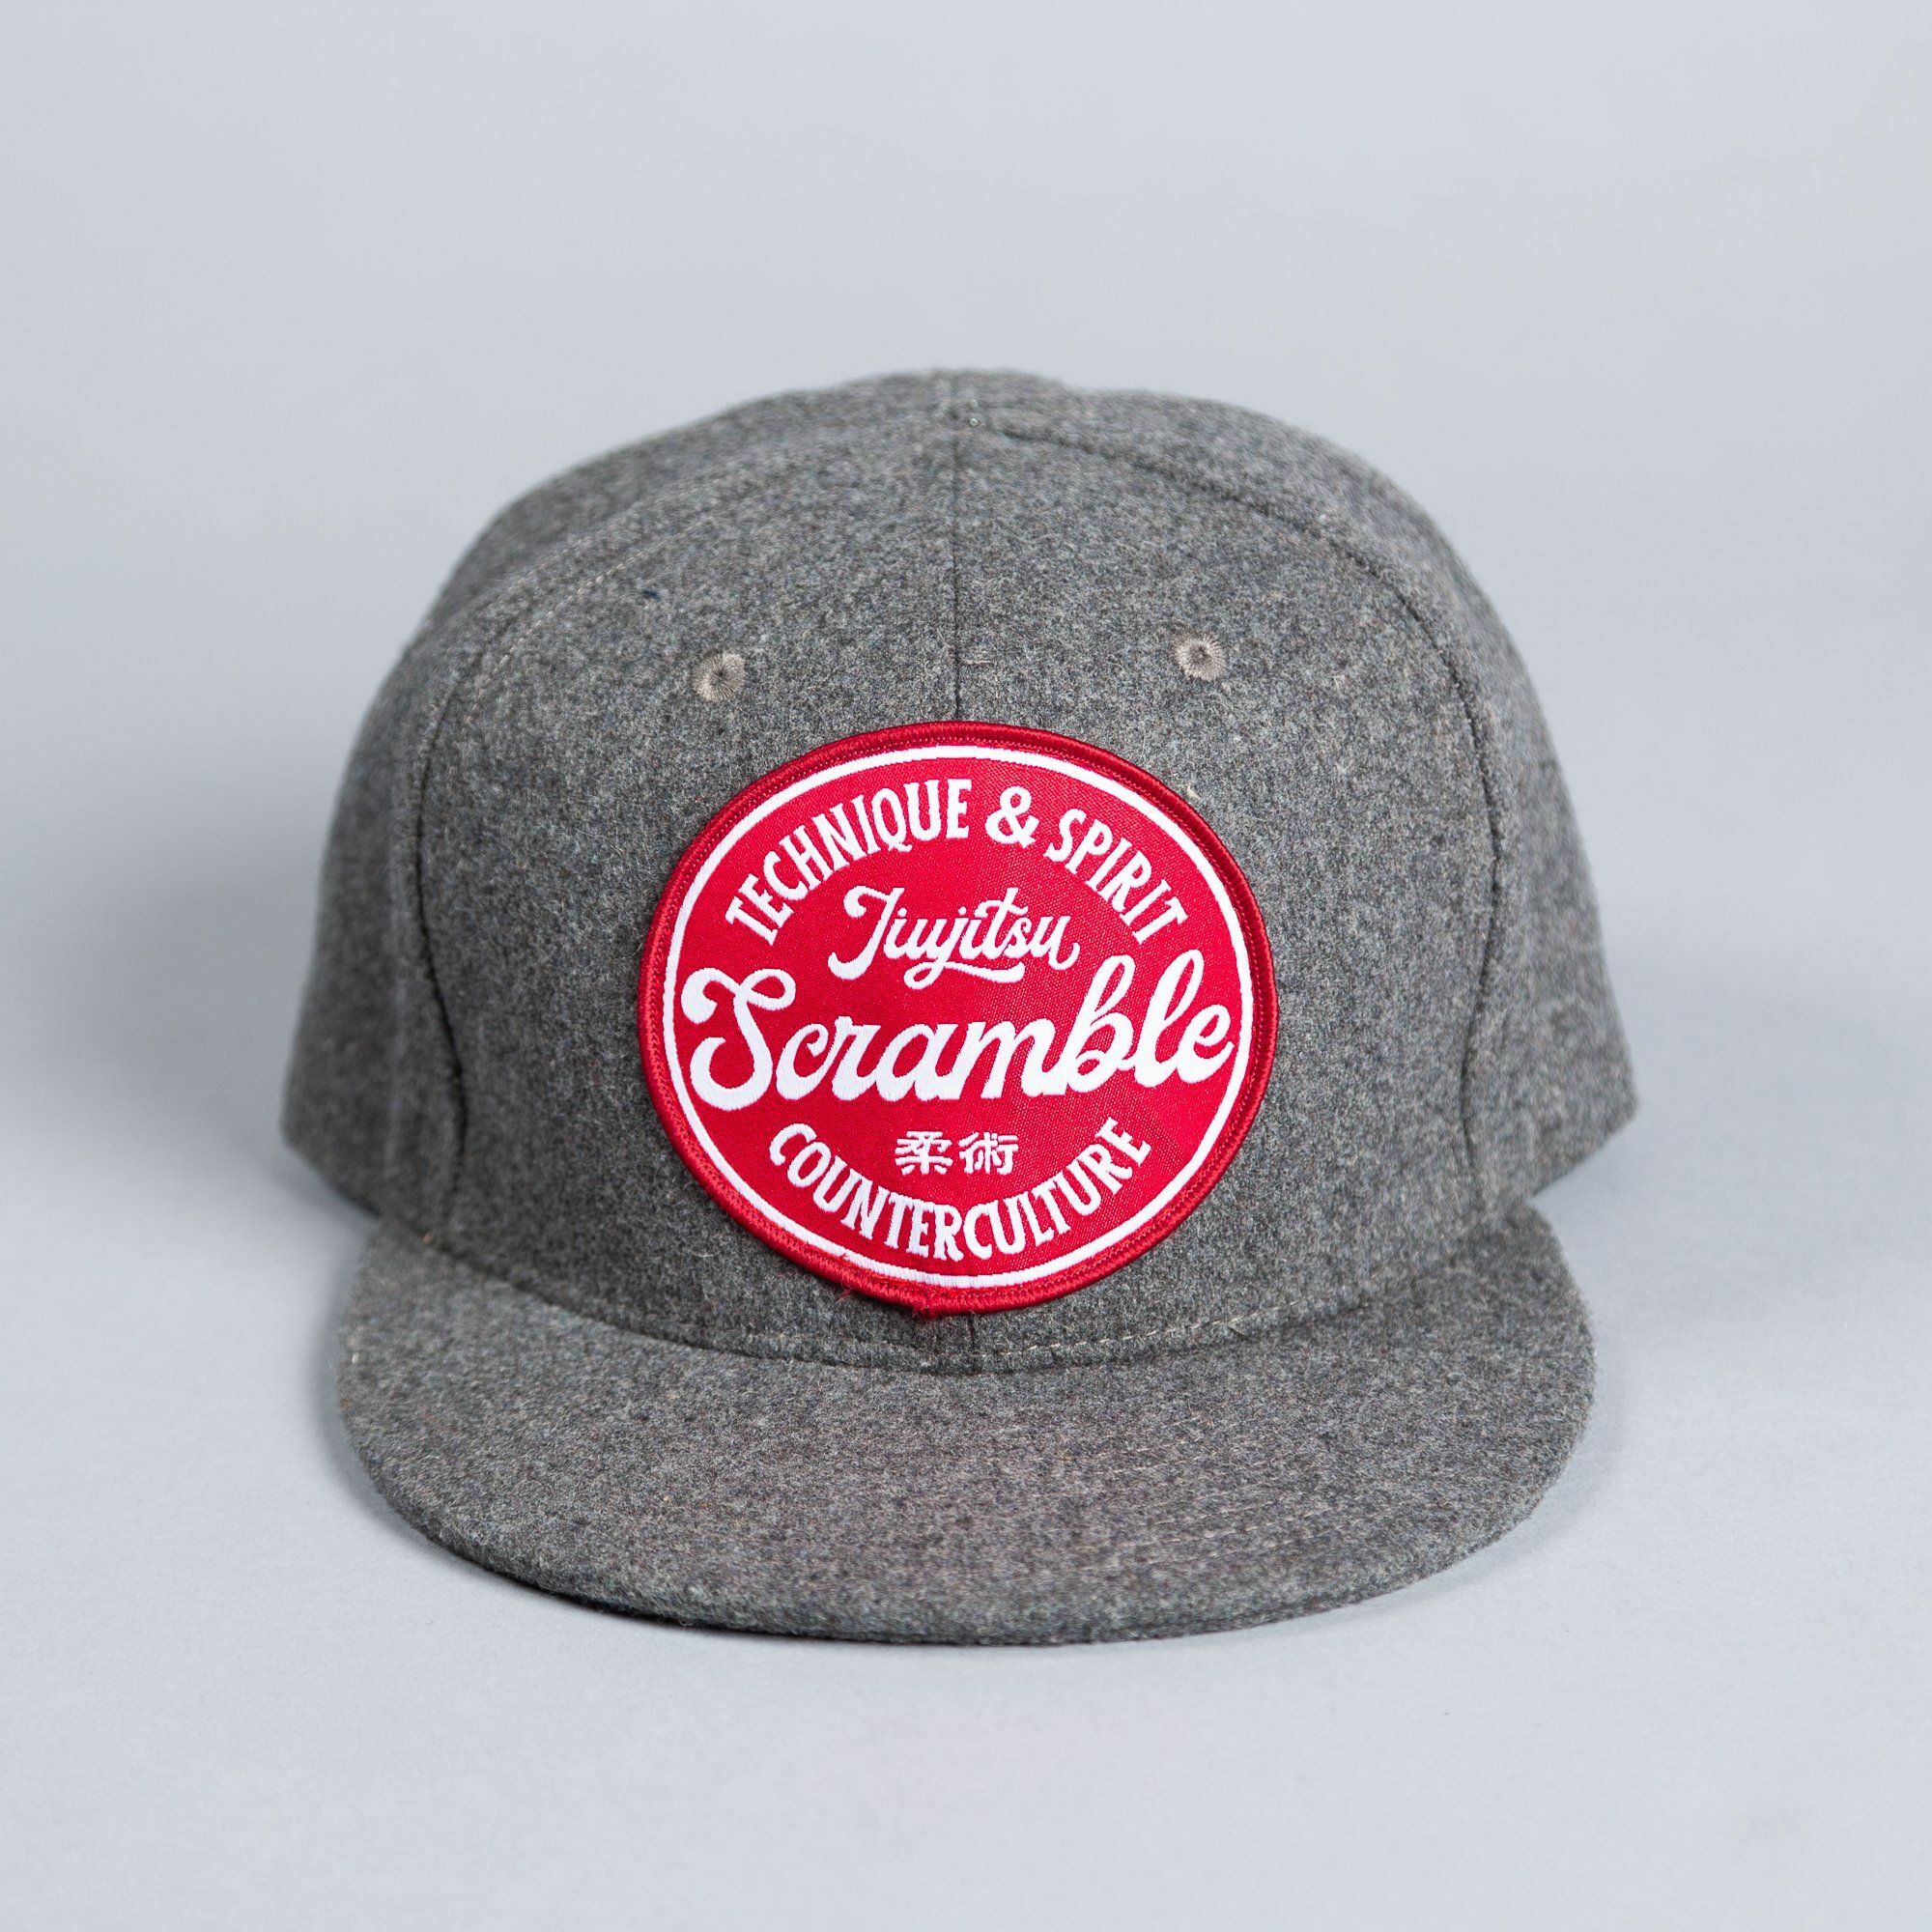 SCRAMBLE TECHNIQUE & SPIRIT TRUCKER HAT – グレイ|帽子